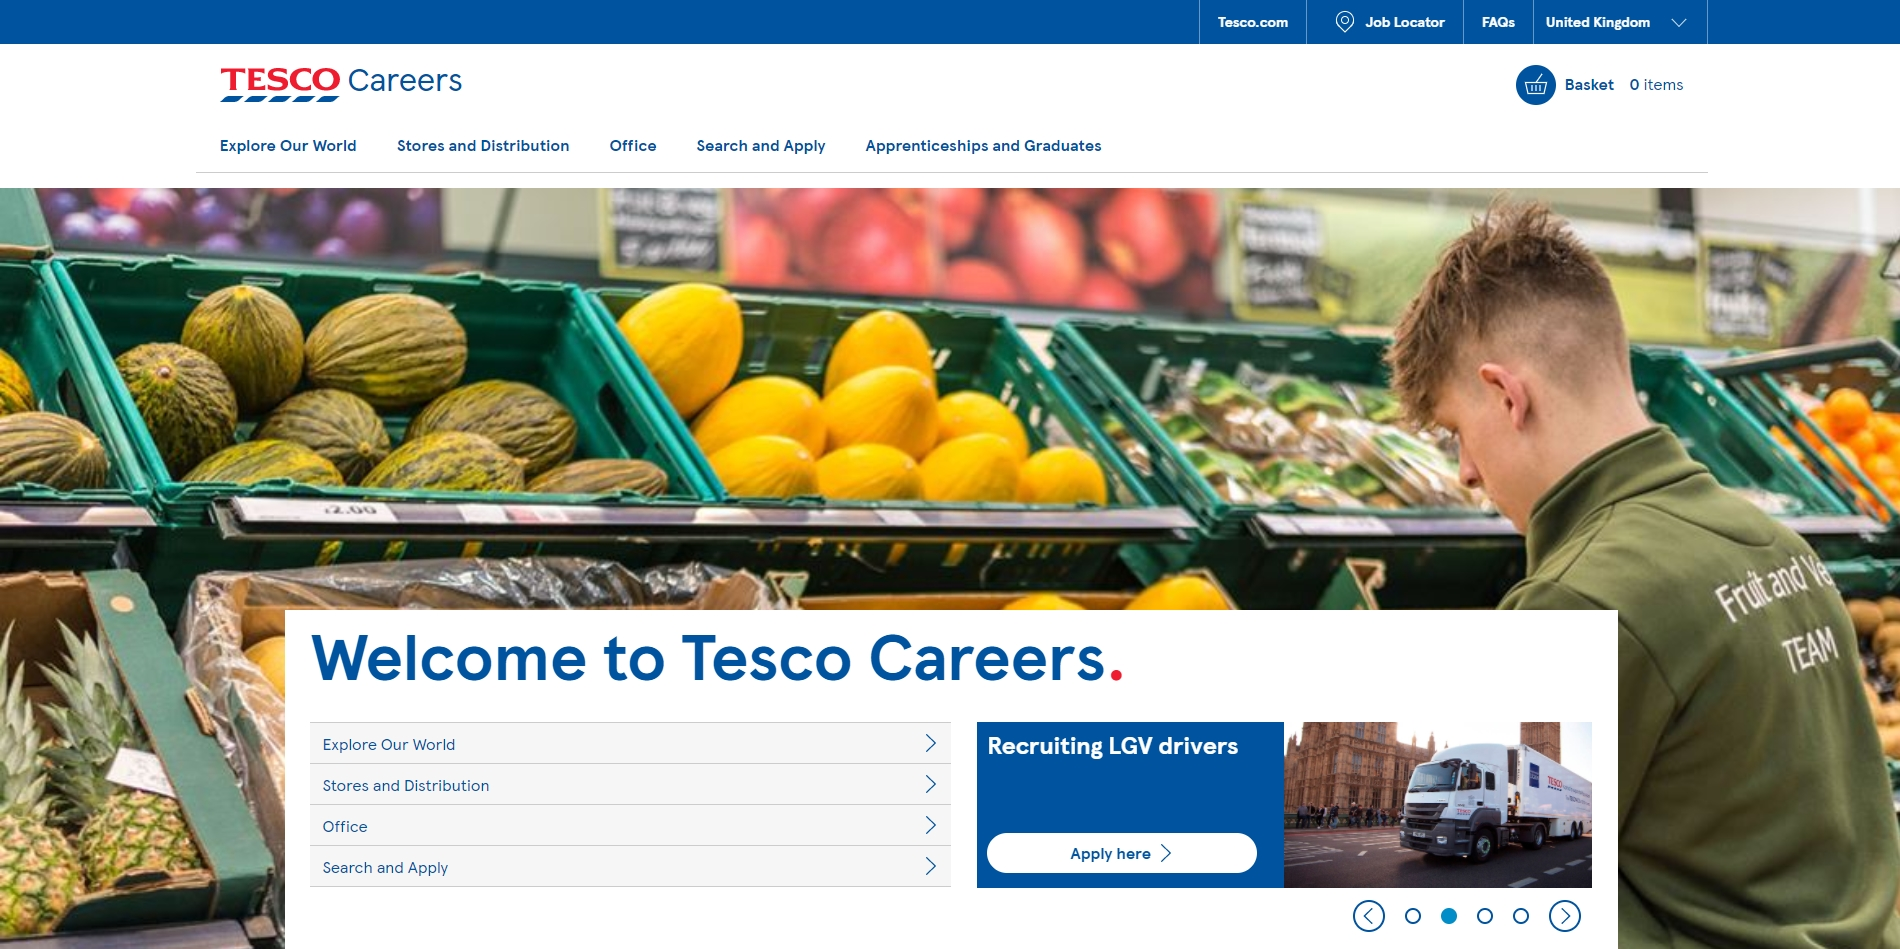 Search and Apply | Tesco Careers